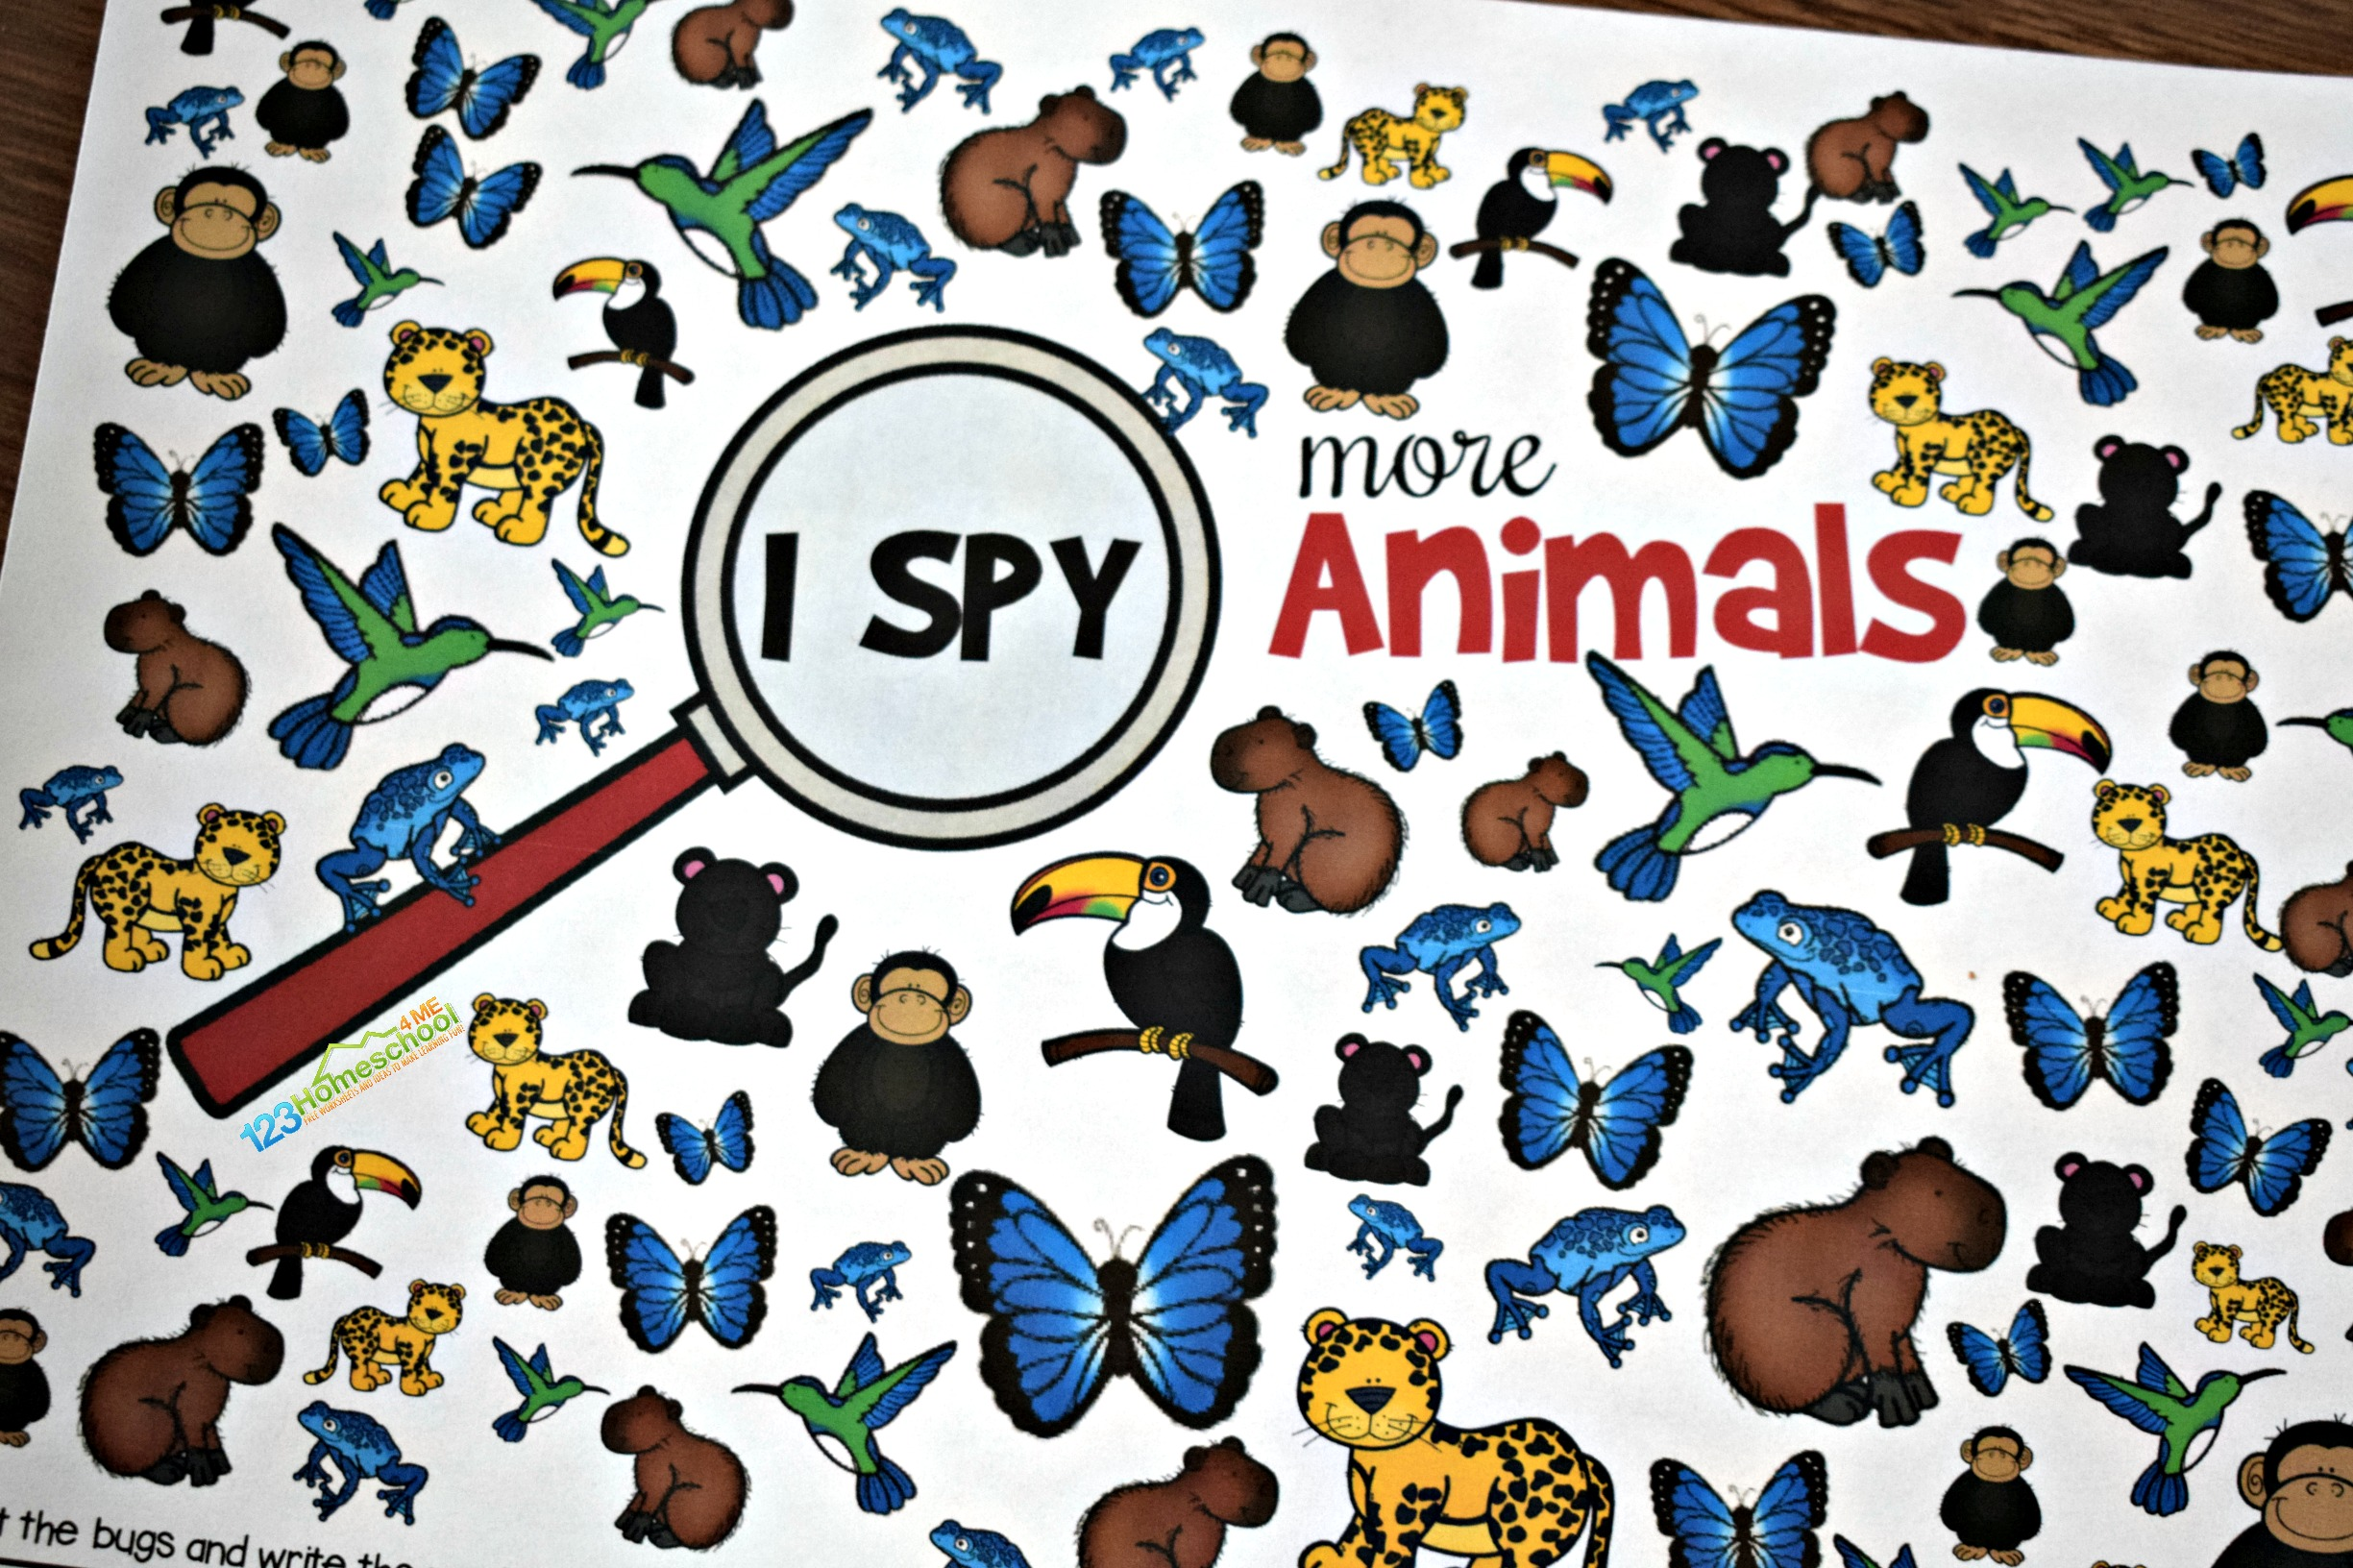 graphic about Animal Printable named No cost Animal I Spy 123 Homeschool 4 Me